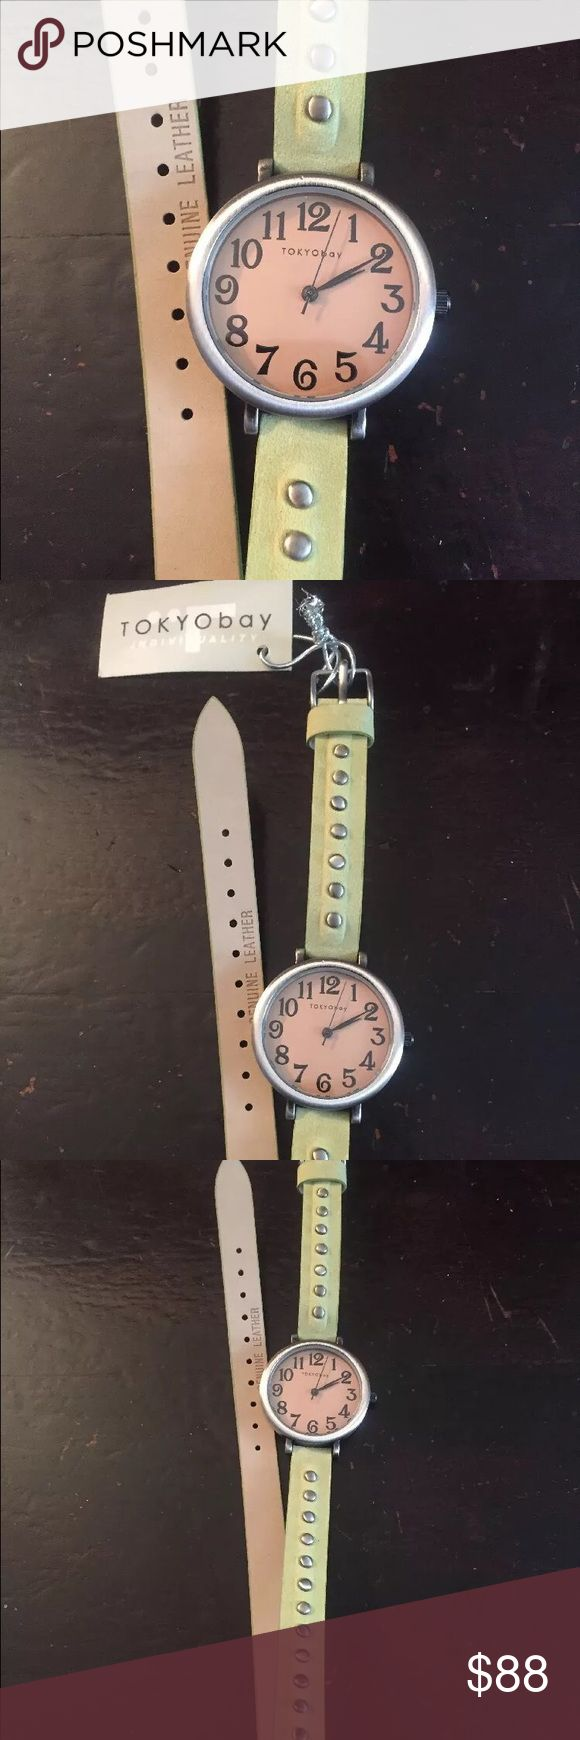 Tokyo Bay NWT Woman's Watch, Quartz, Analog Tokyo Bay woman's watch. Green leather with studs, double wrap around, needs new battery, otherwise perfect condition, NWT Tokyo Bay Accessories Watches